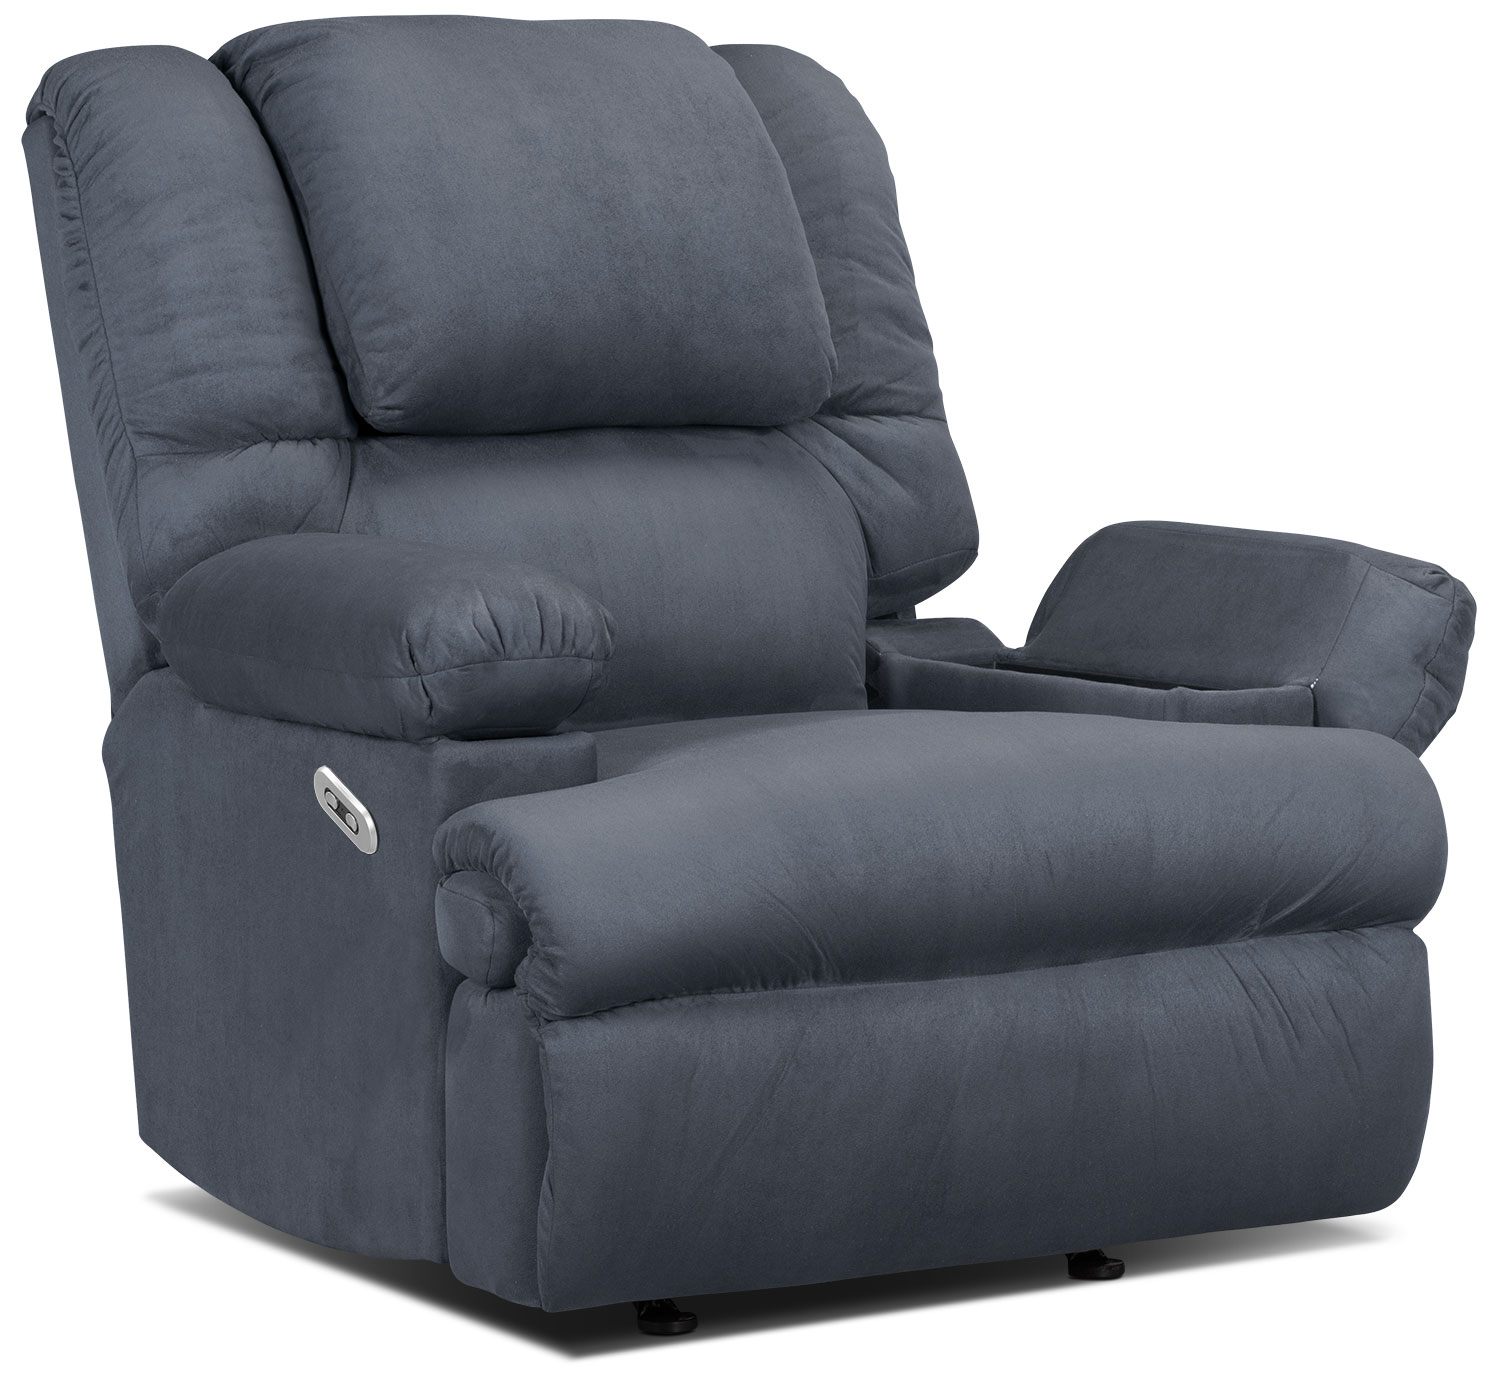 Living Room Furniture - Designed2B Recliner 5598 Padded Suede Power Recliner with Massage and Storage Arms - Navy